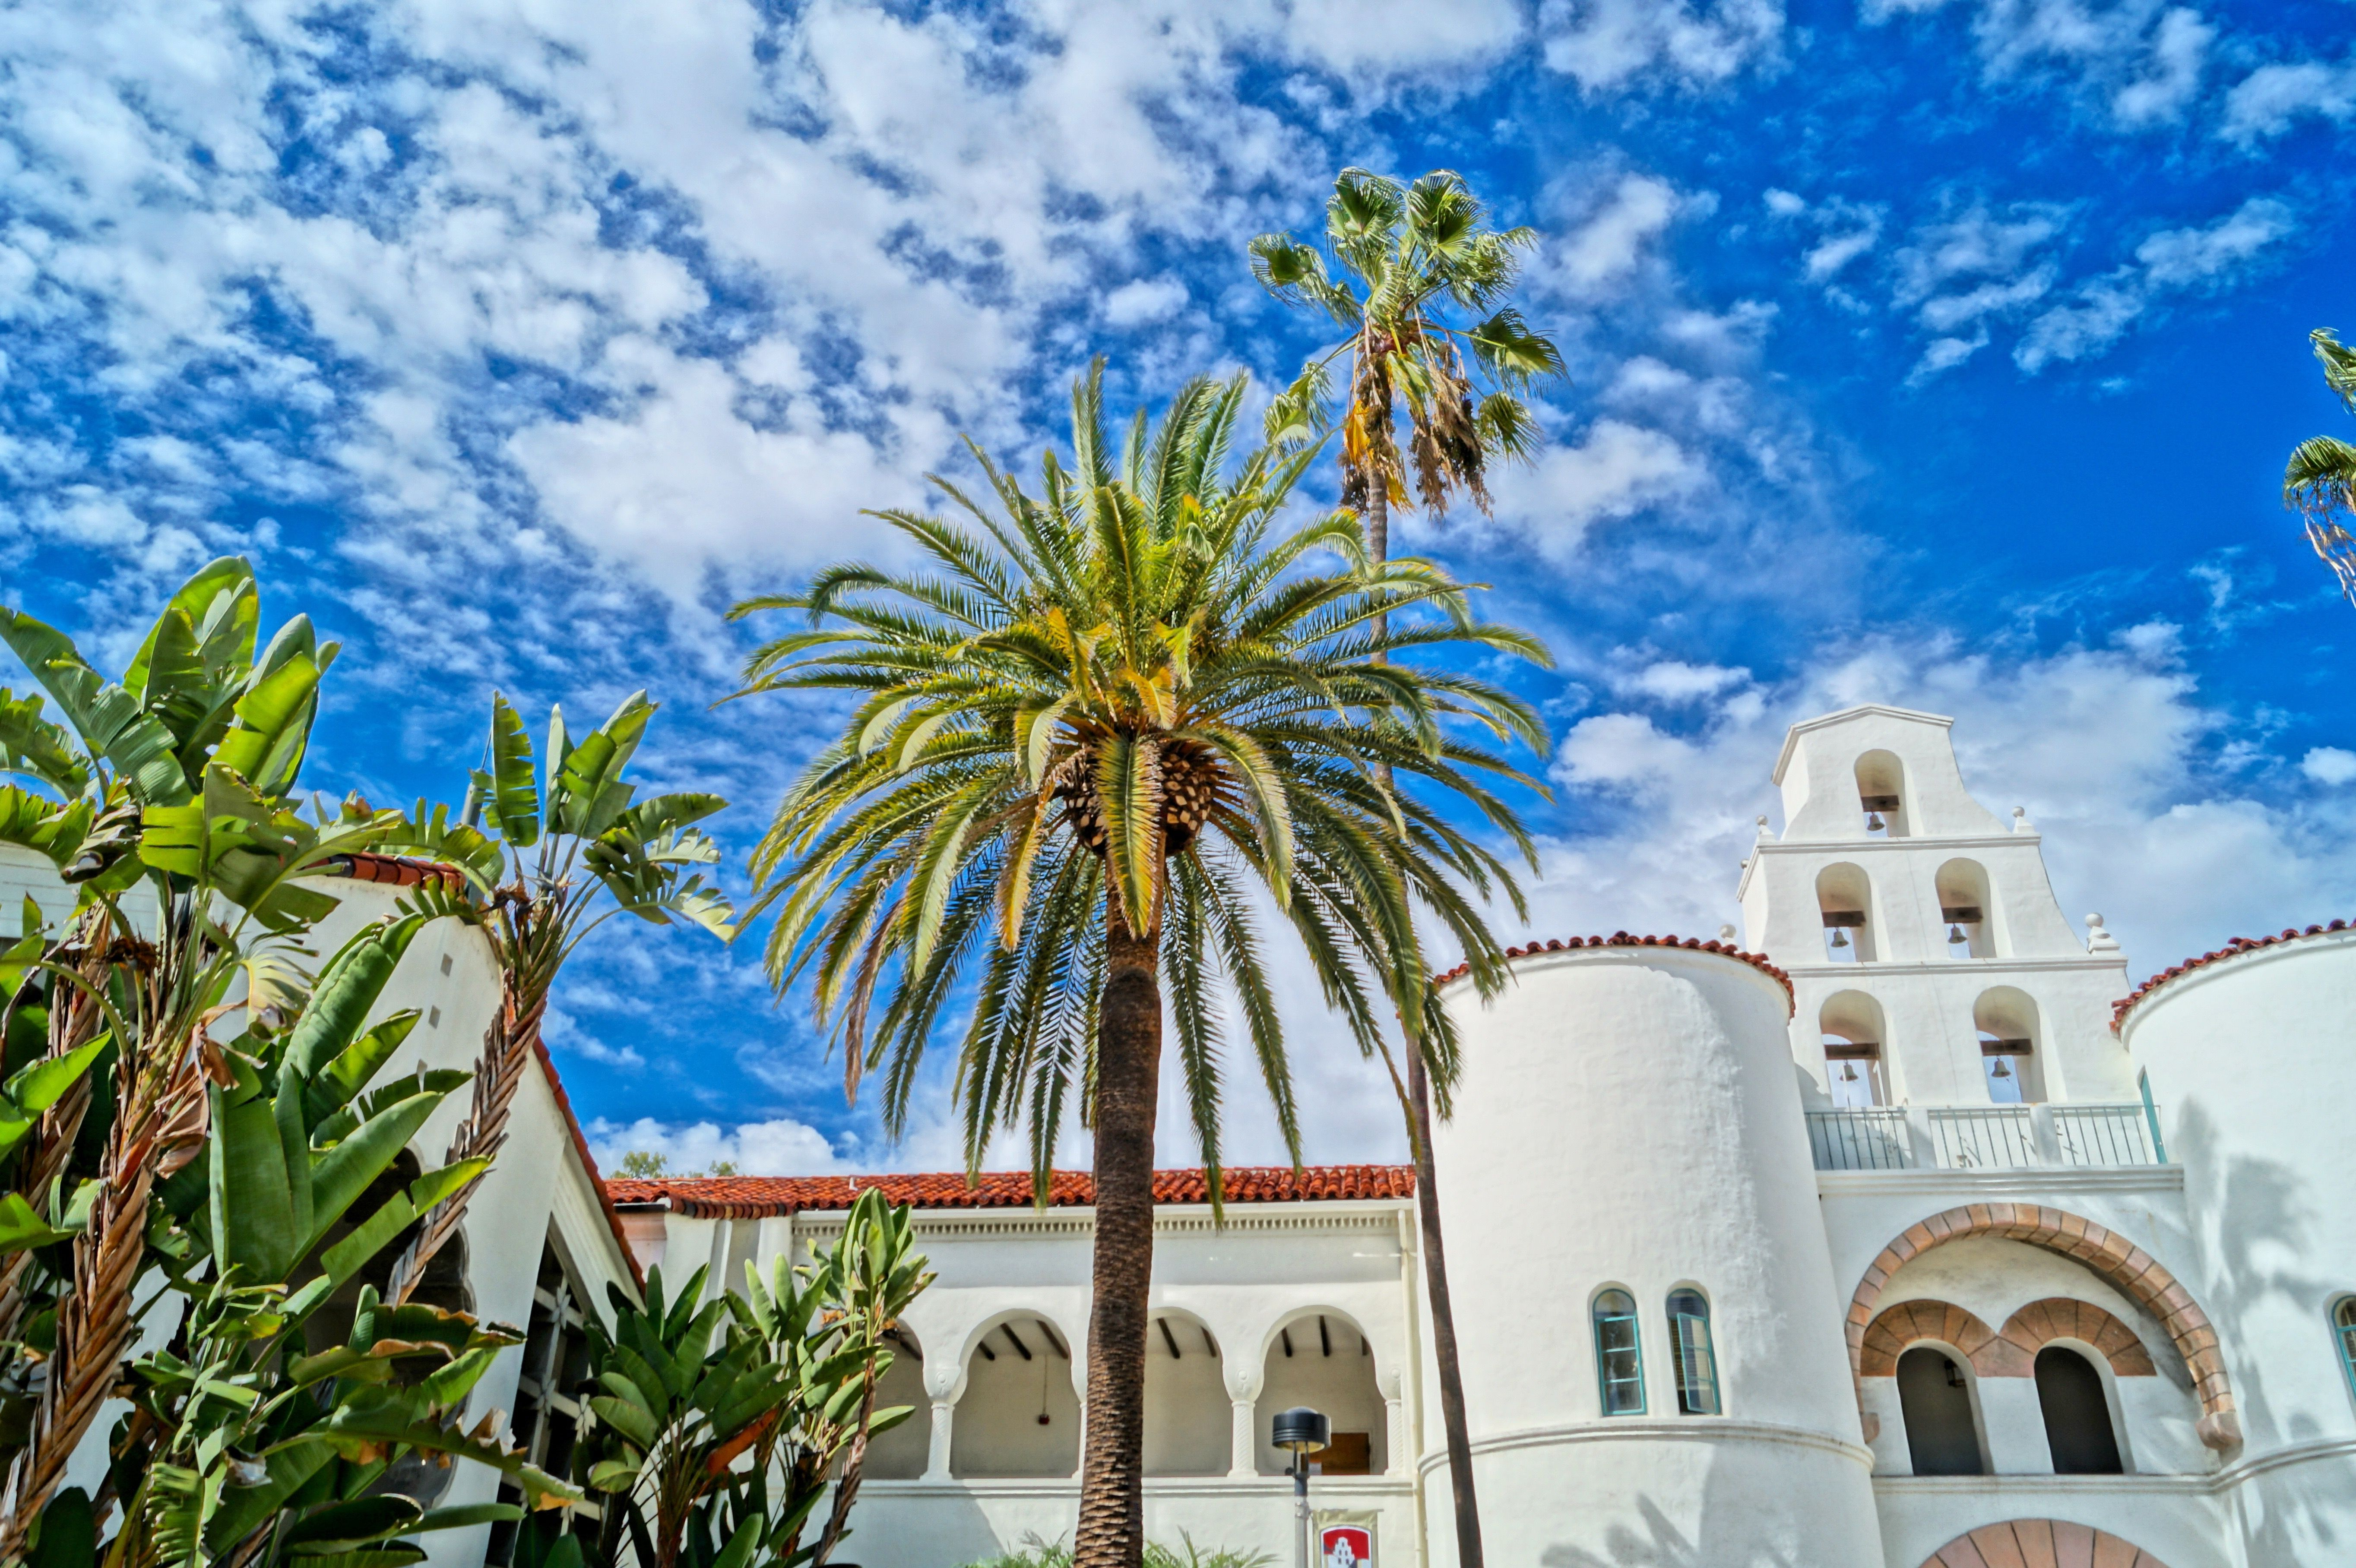 Low Angle View Of San Diego State University And Palm Trees Against Cloudy Sky